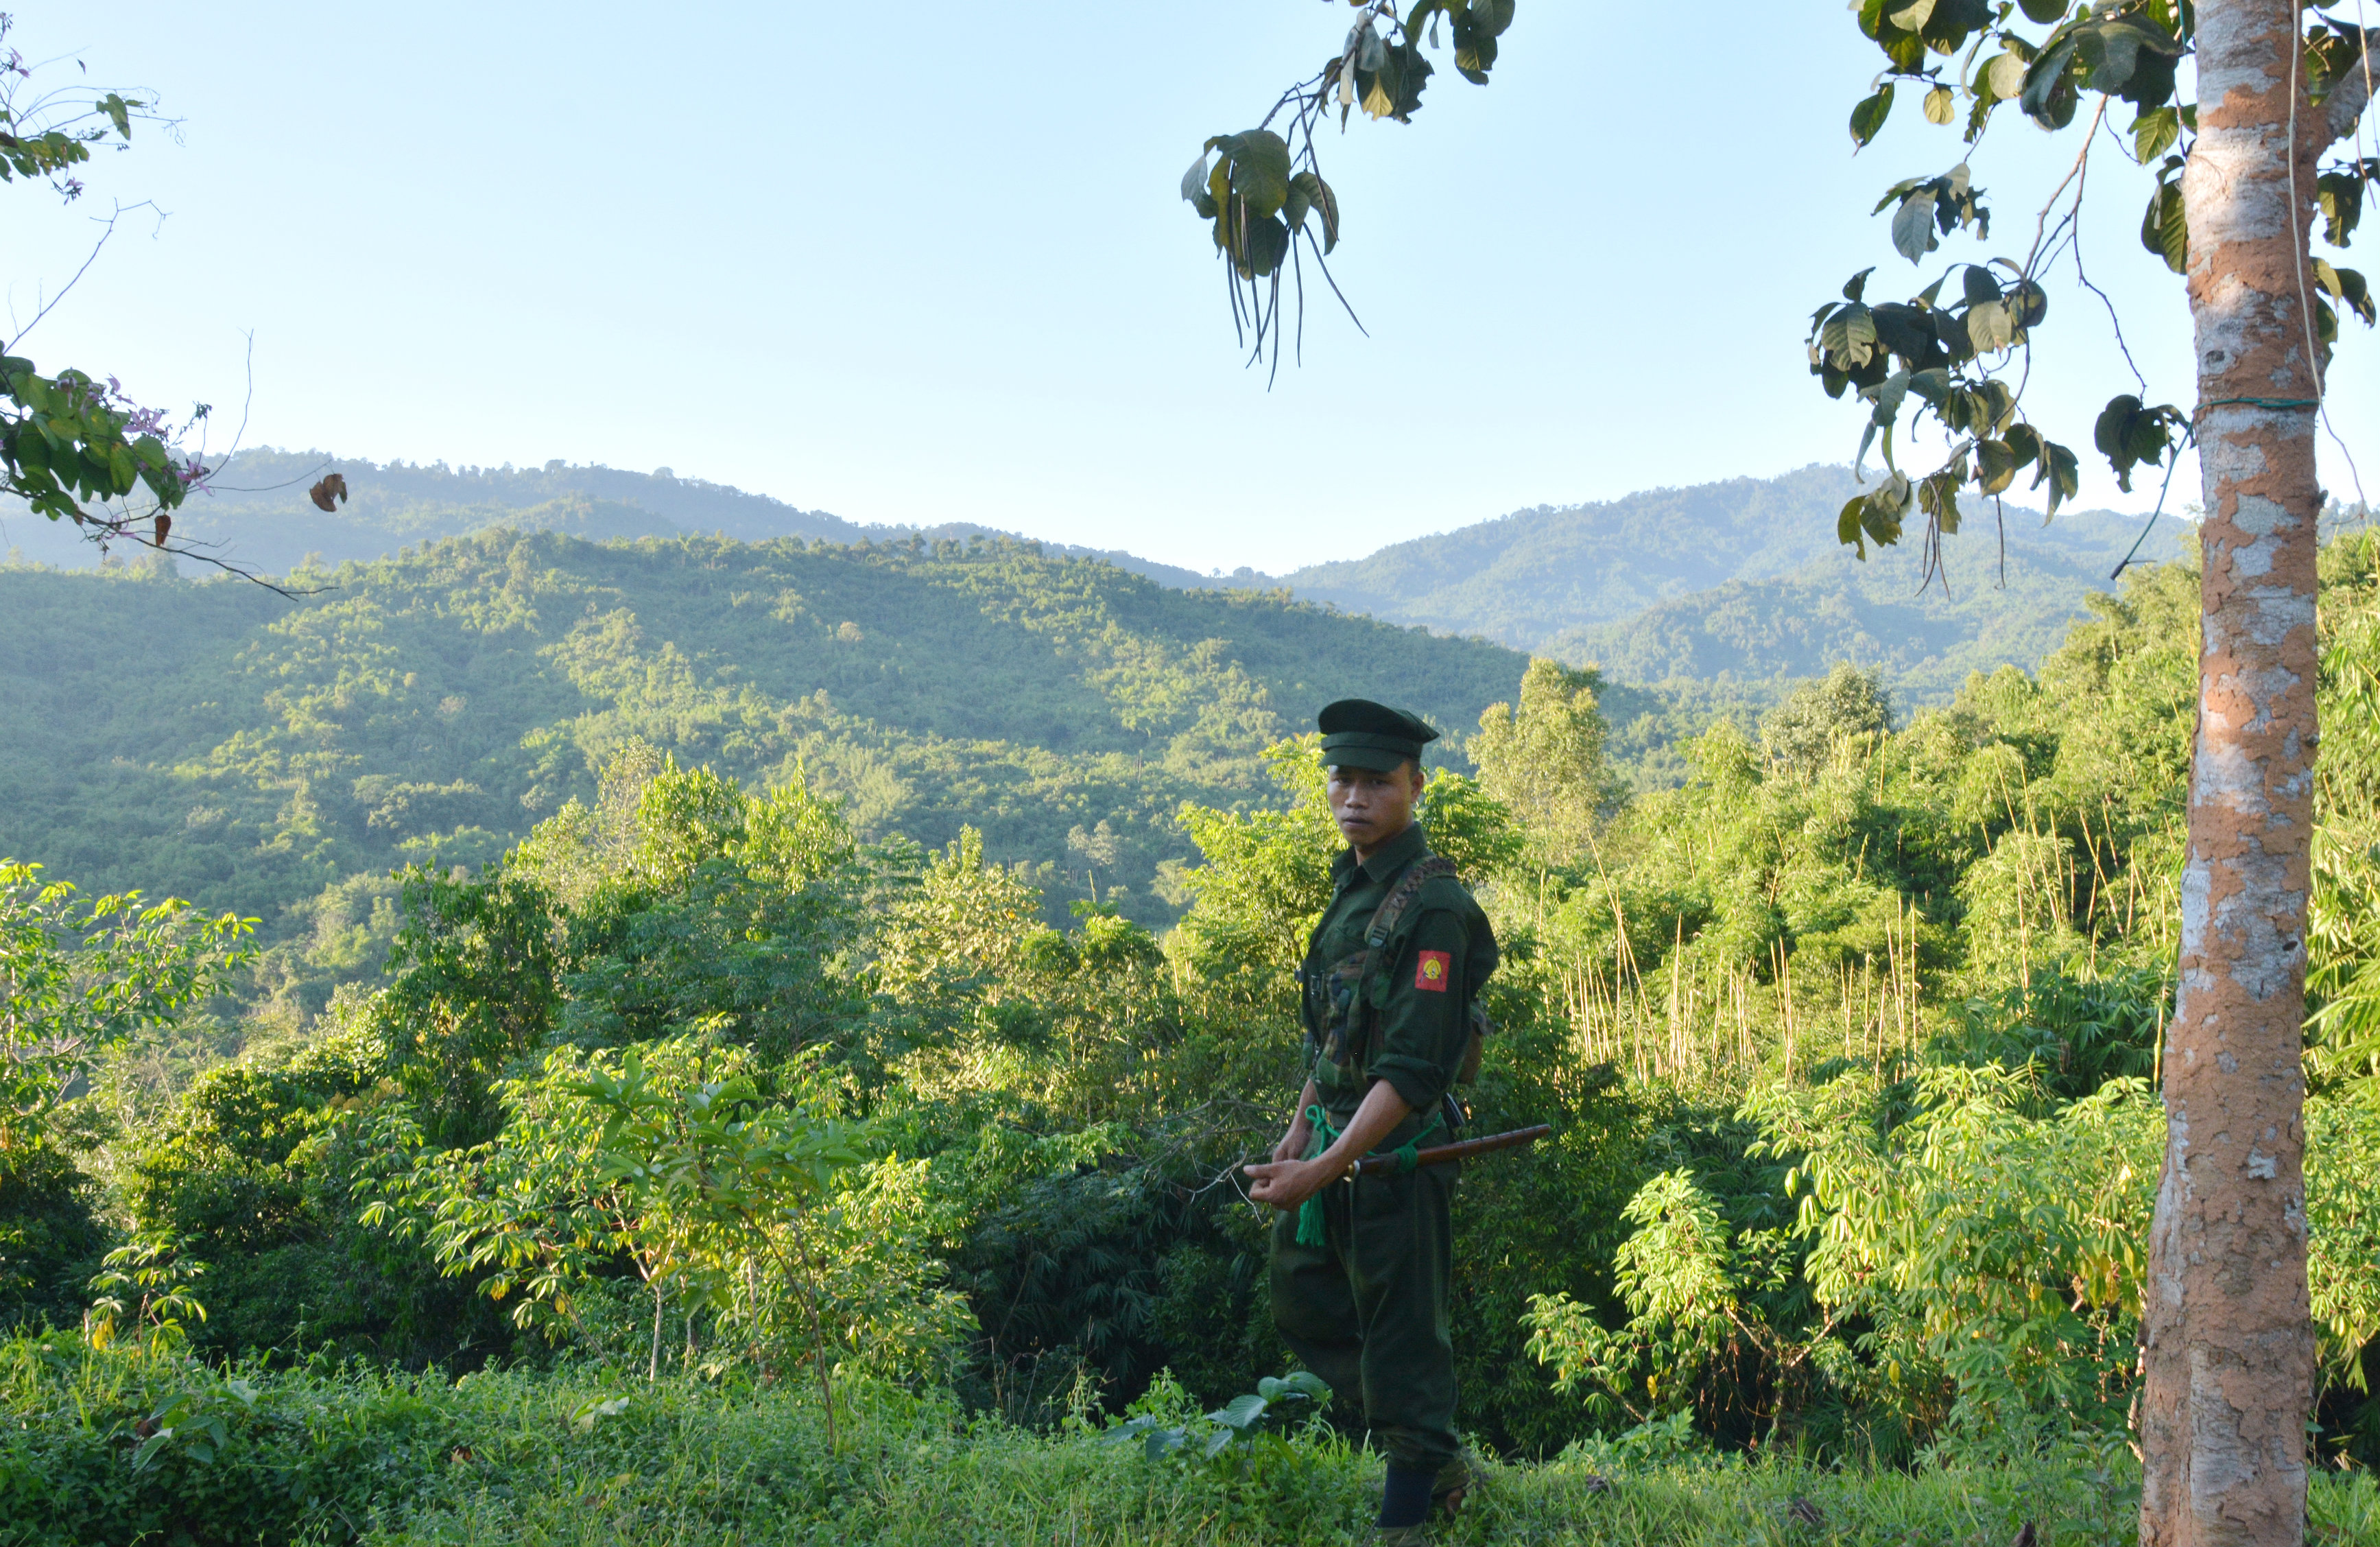 A Kachin Independence Army (KIA) soldier seen at Lawa Yang front-line post. The Burma army is stationed on the hills in the background.